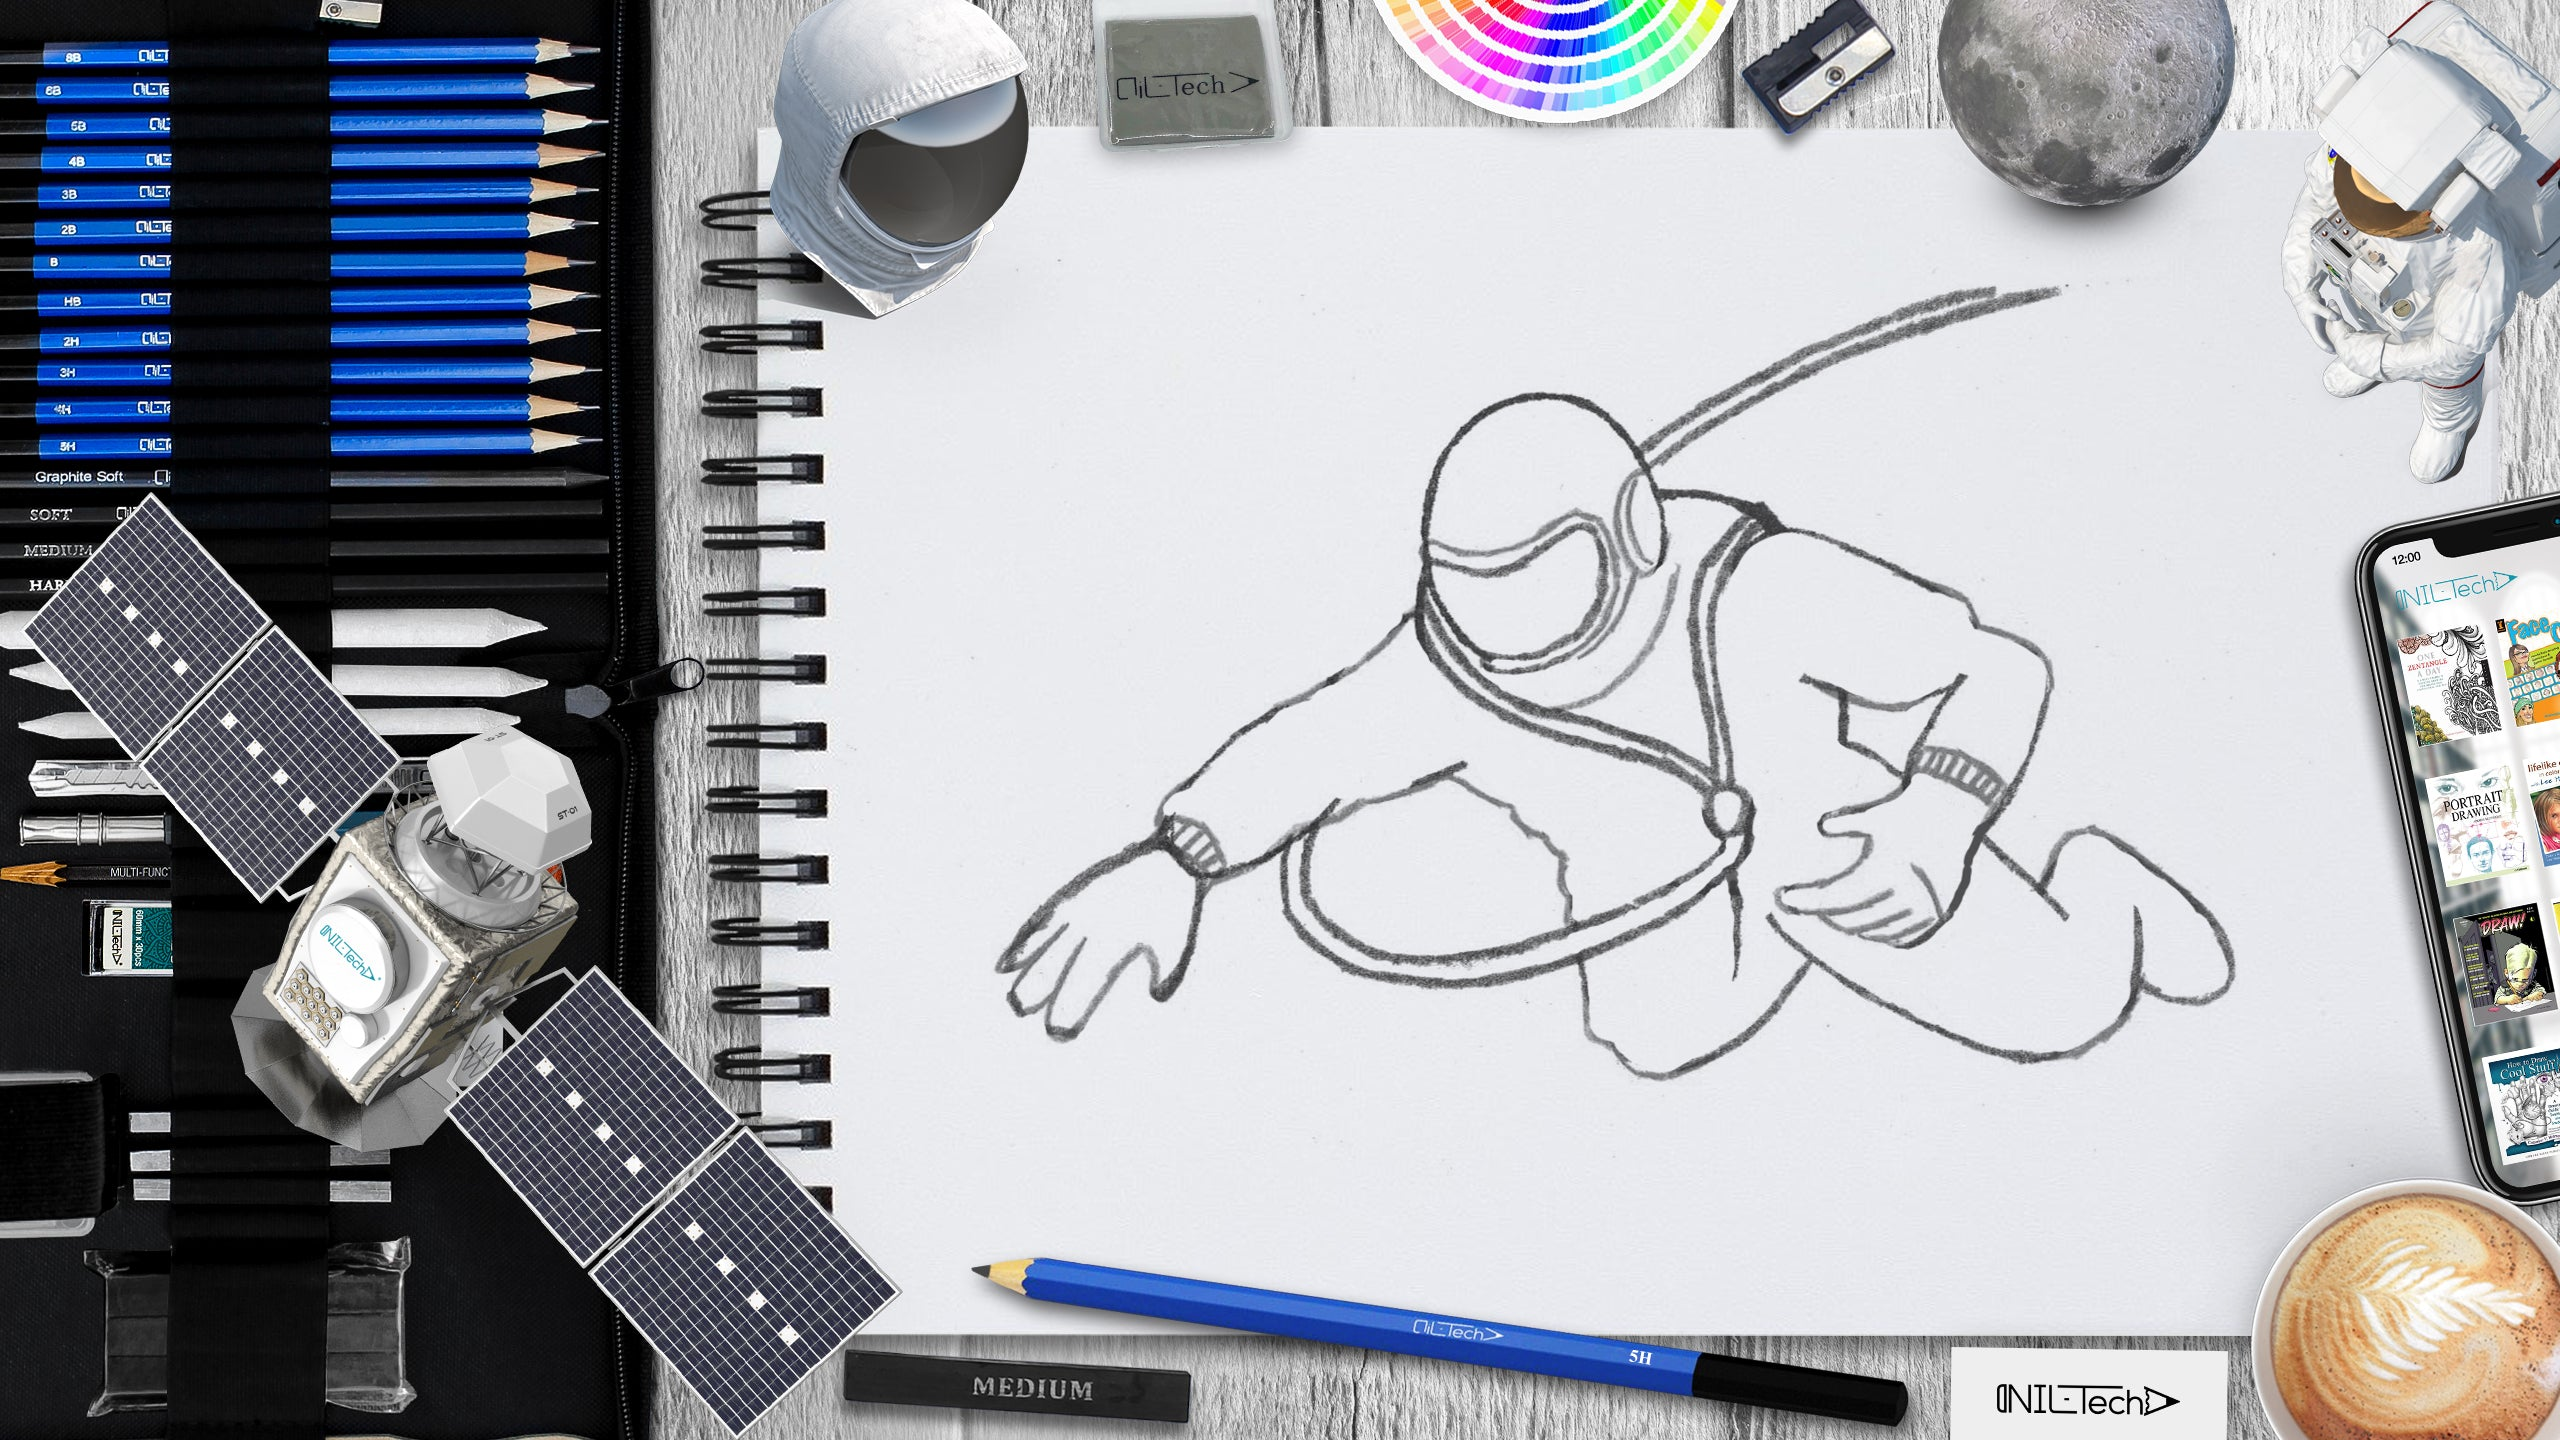 astronaut Alexei Leonov step by step drawing tutorial for beginners